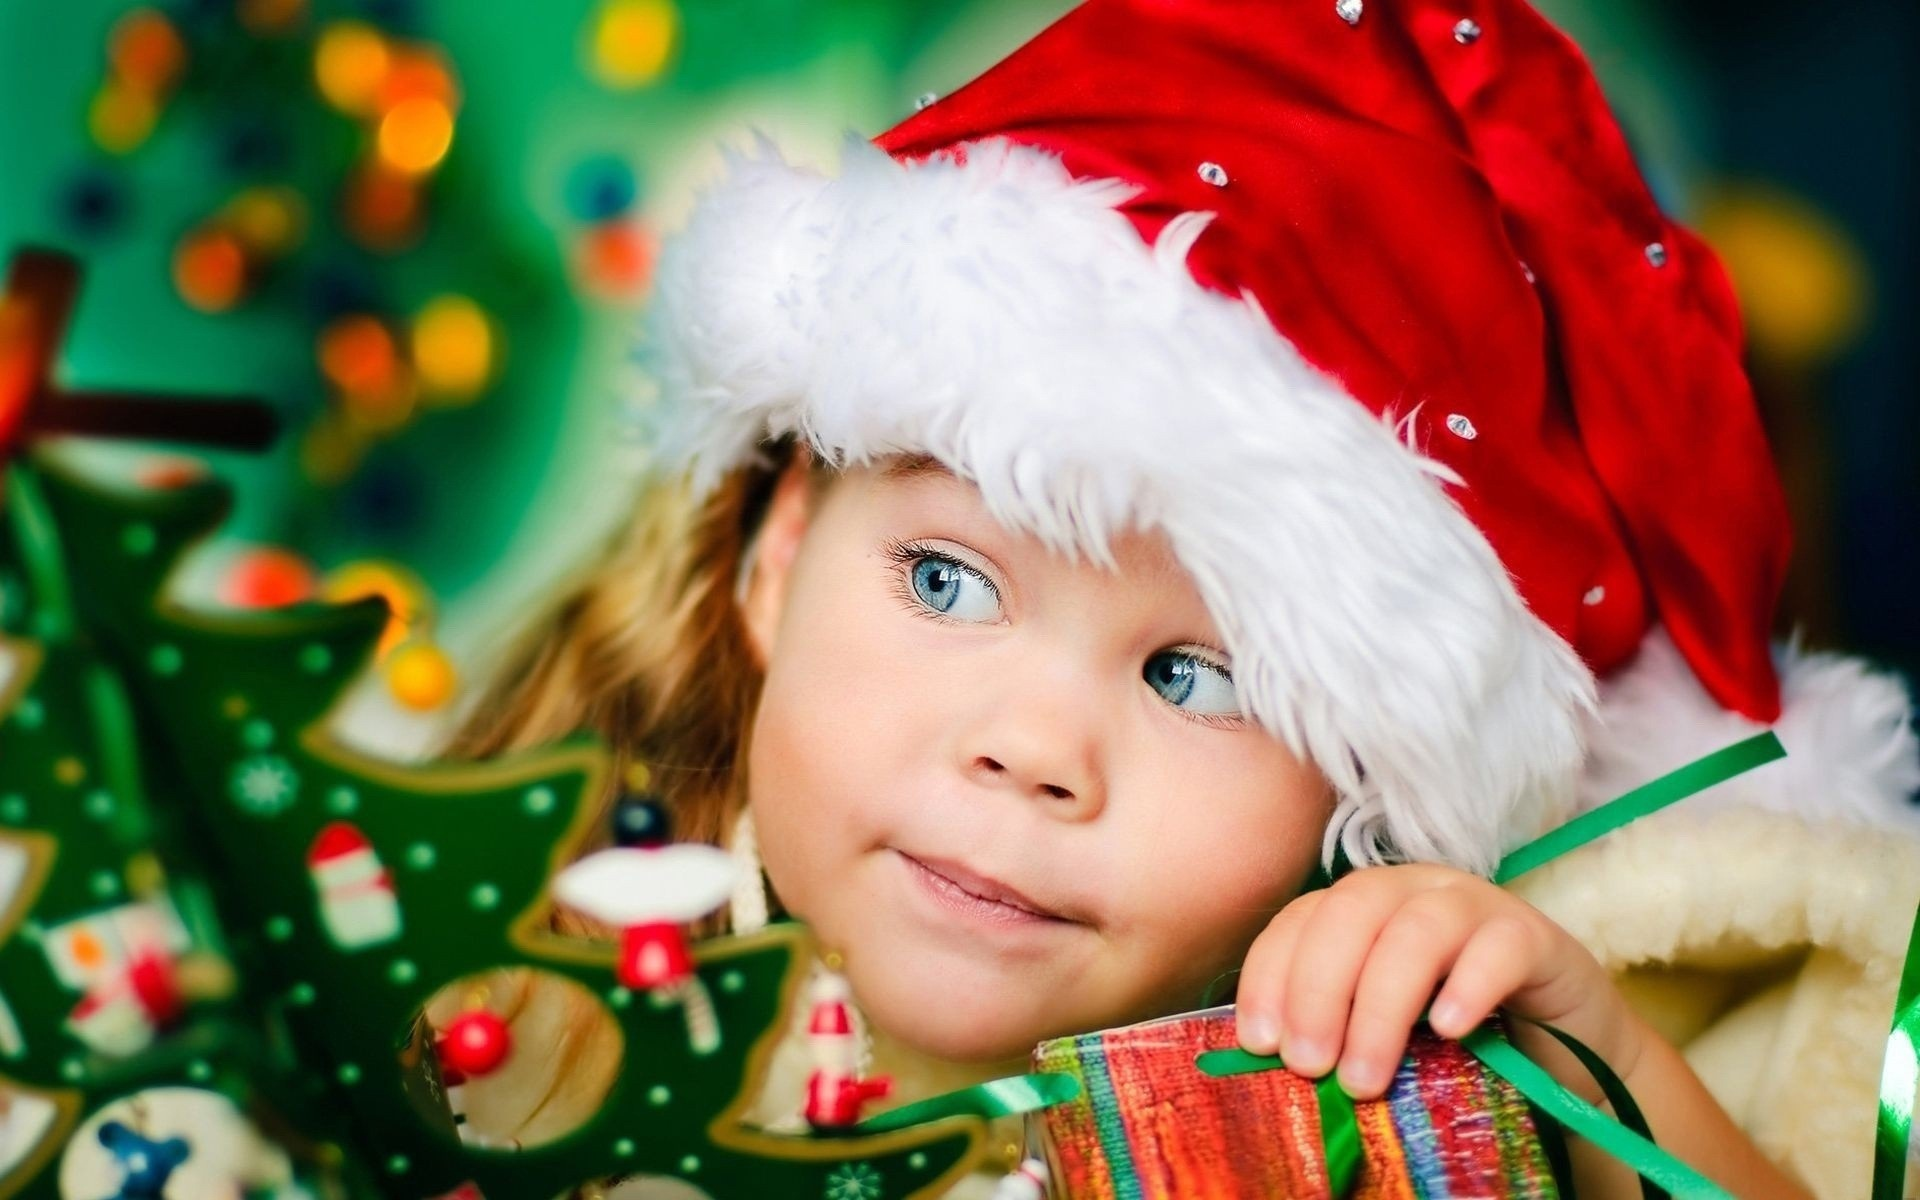 Christmas shows in Lisbon is a must see for children